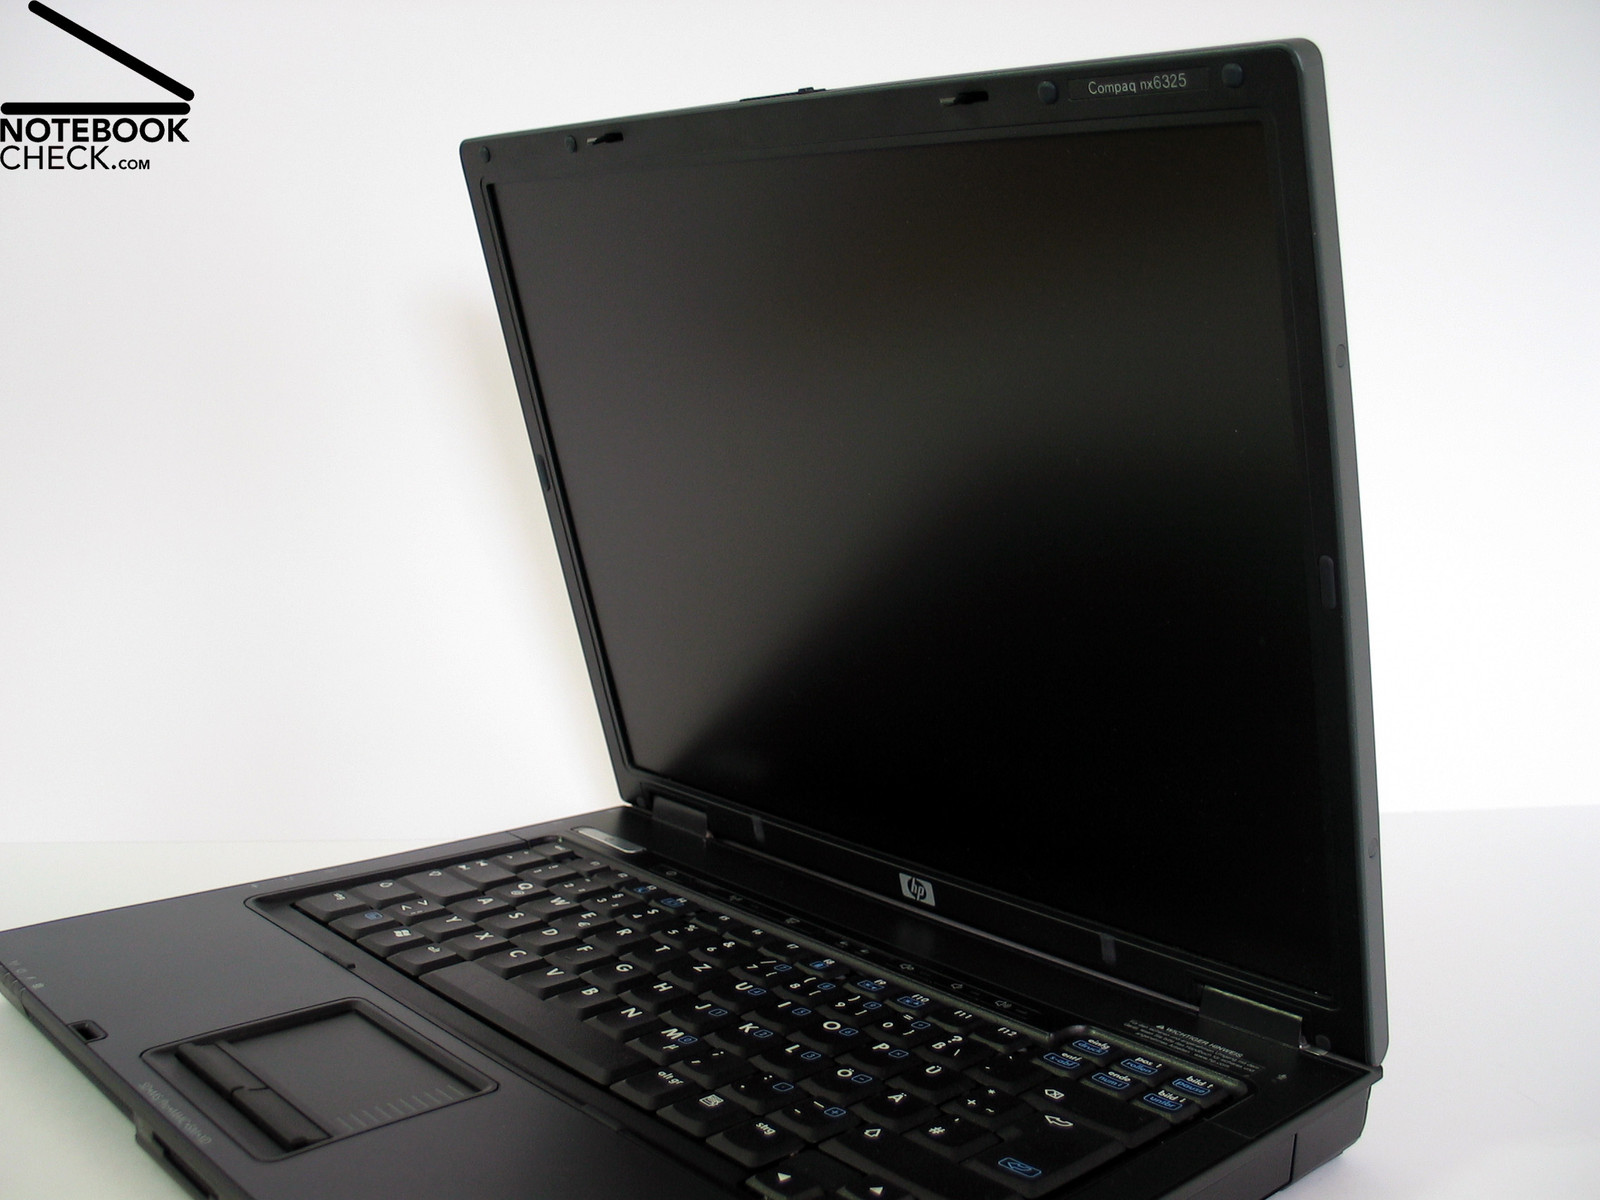 COMPAQ NX6325 GRAPHICS WINDOWS 7 X64 TREIBER